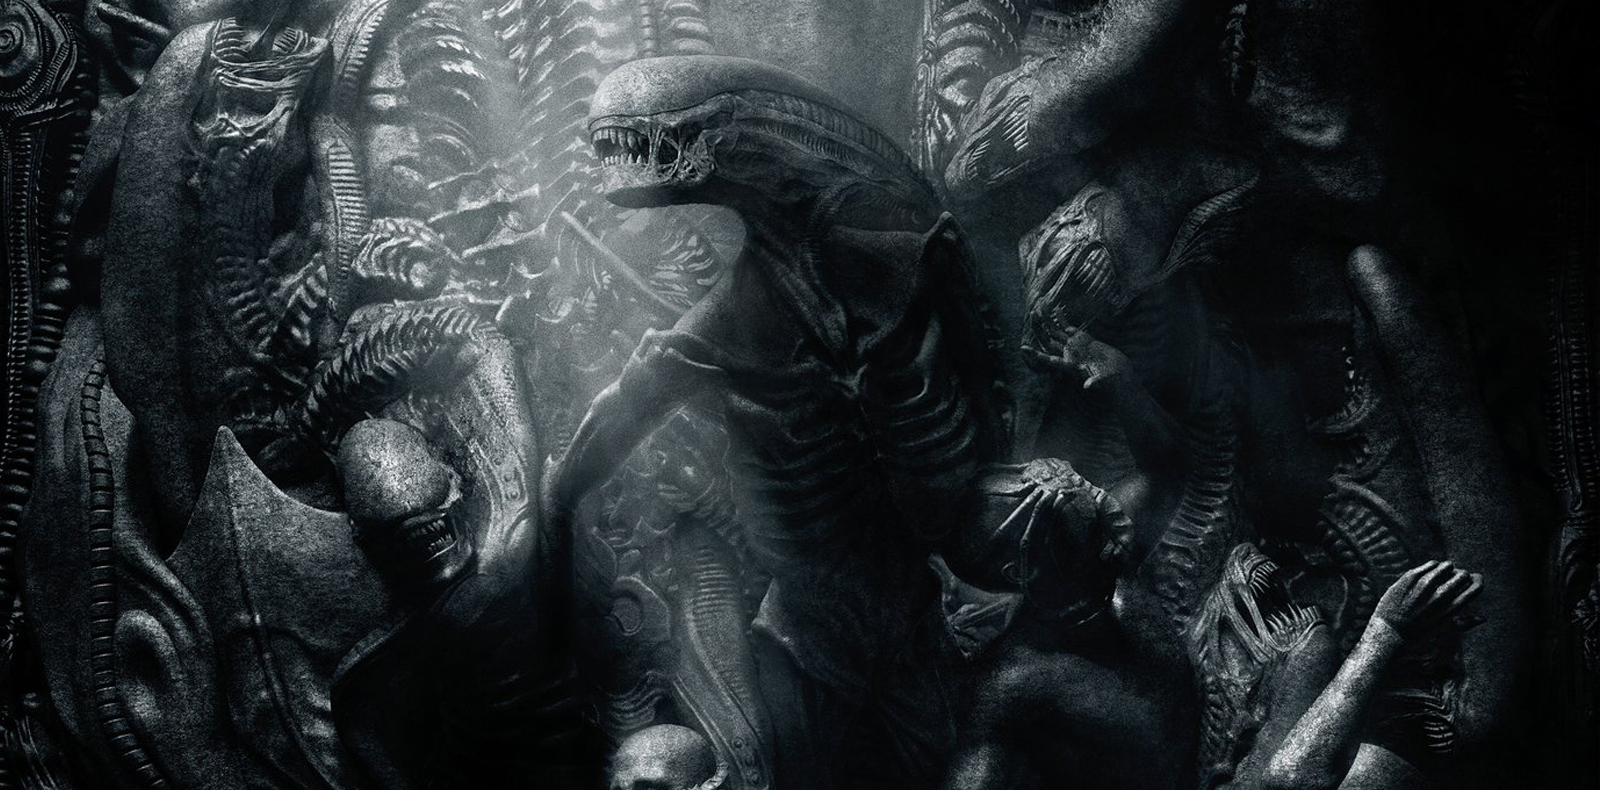 """The Origins of Alien"", autopsie d'un film d'horreur"